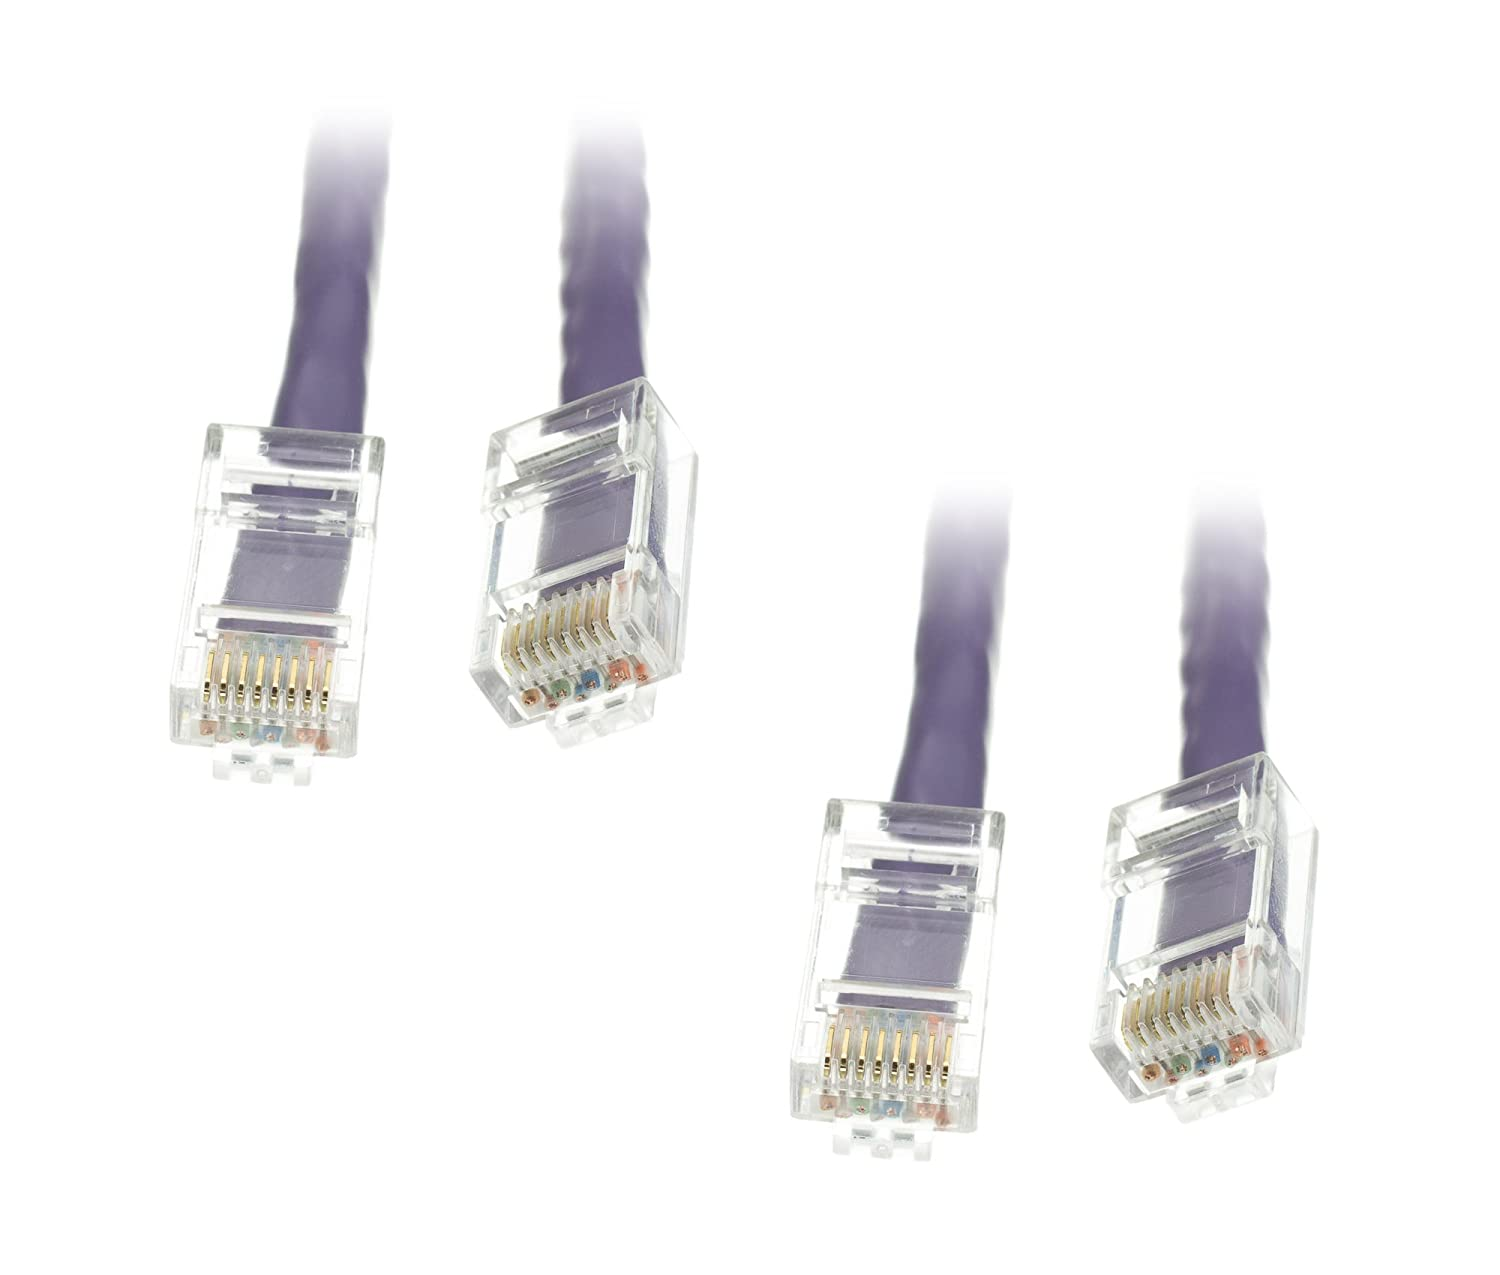 Ce 2 Pack Cat6 Ethernet Patch Cable Bootless Purple Cat5e Black 5 Foot Part Number 10x6 25 Feet Cne479052 Computers Accessories